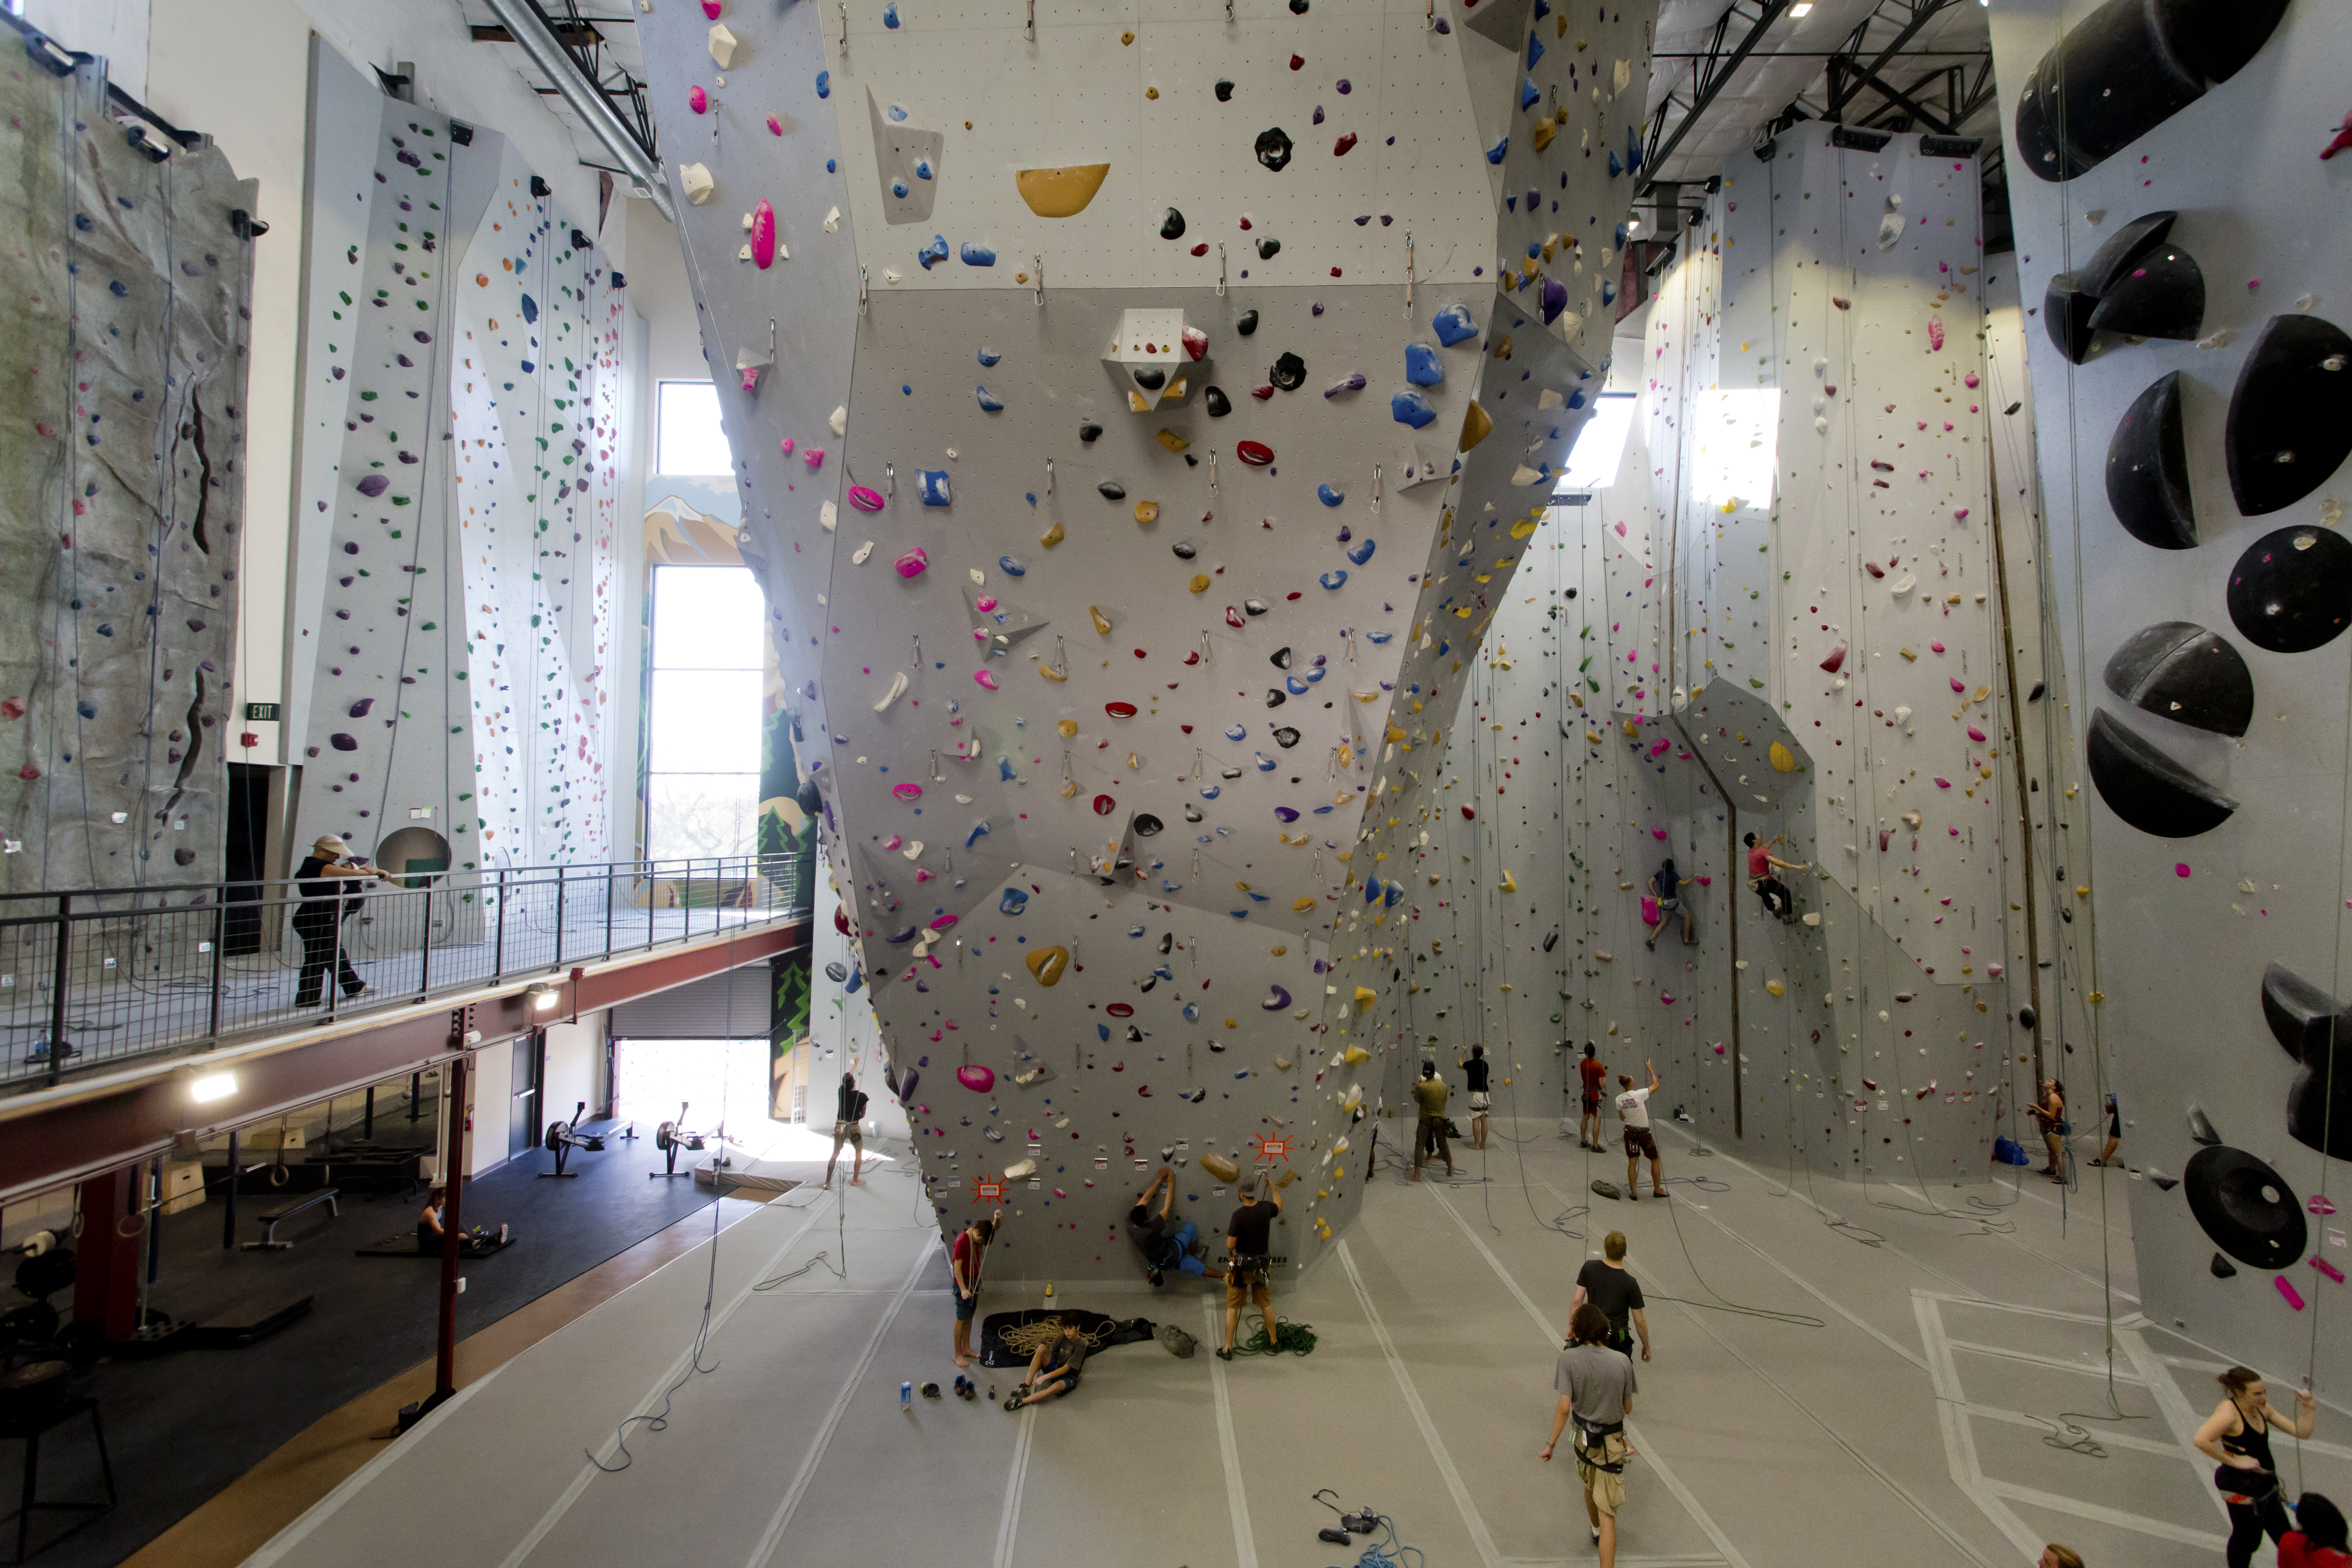 The ascent of climbing gyms, and battle for post-industrial real estate